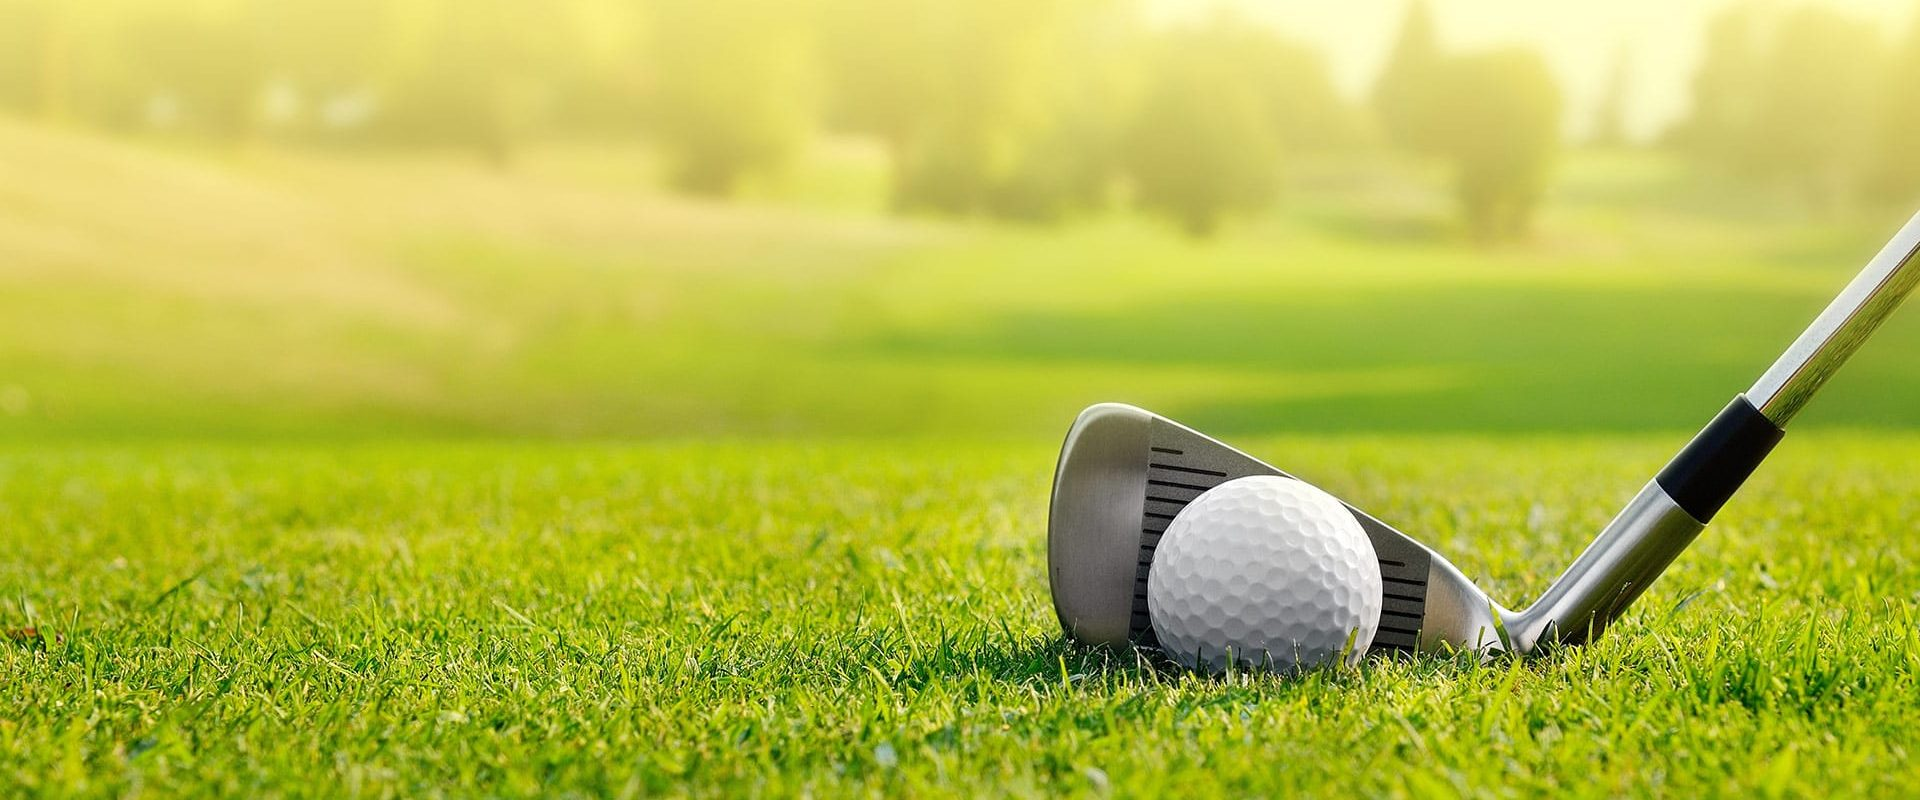 golf ball and club on golf course